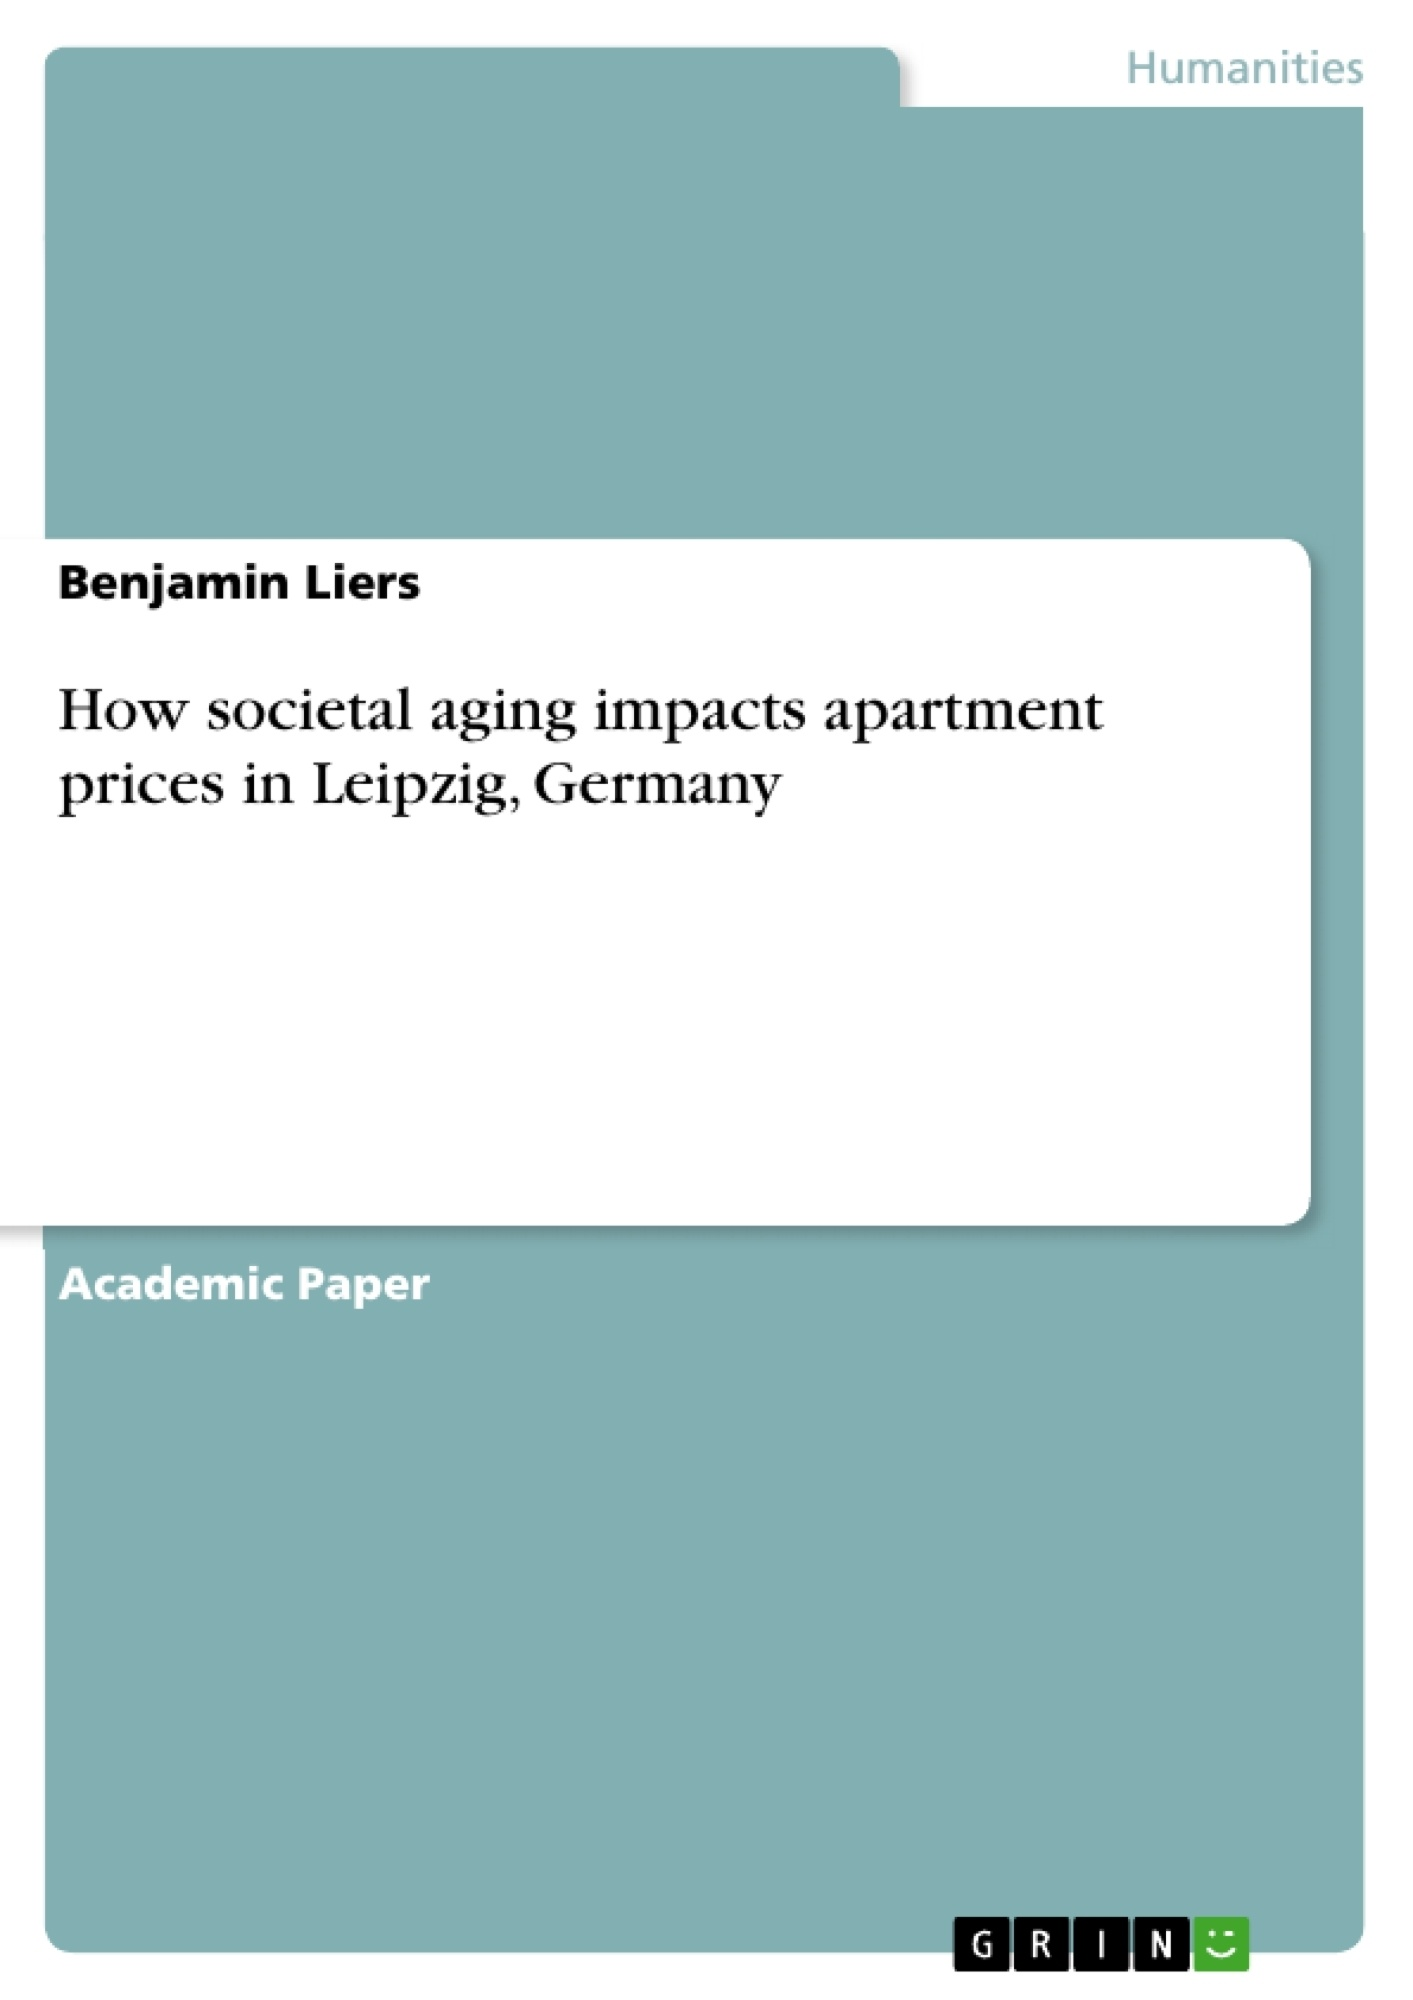 Title: How societal aging impacts apartment prices in Leipzig, Germany